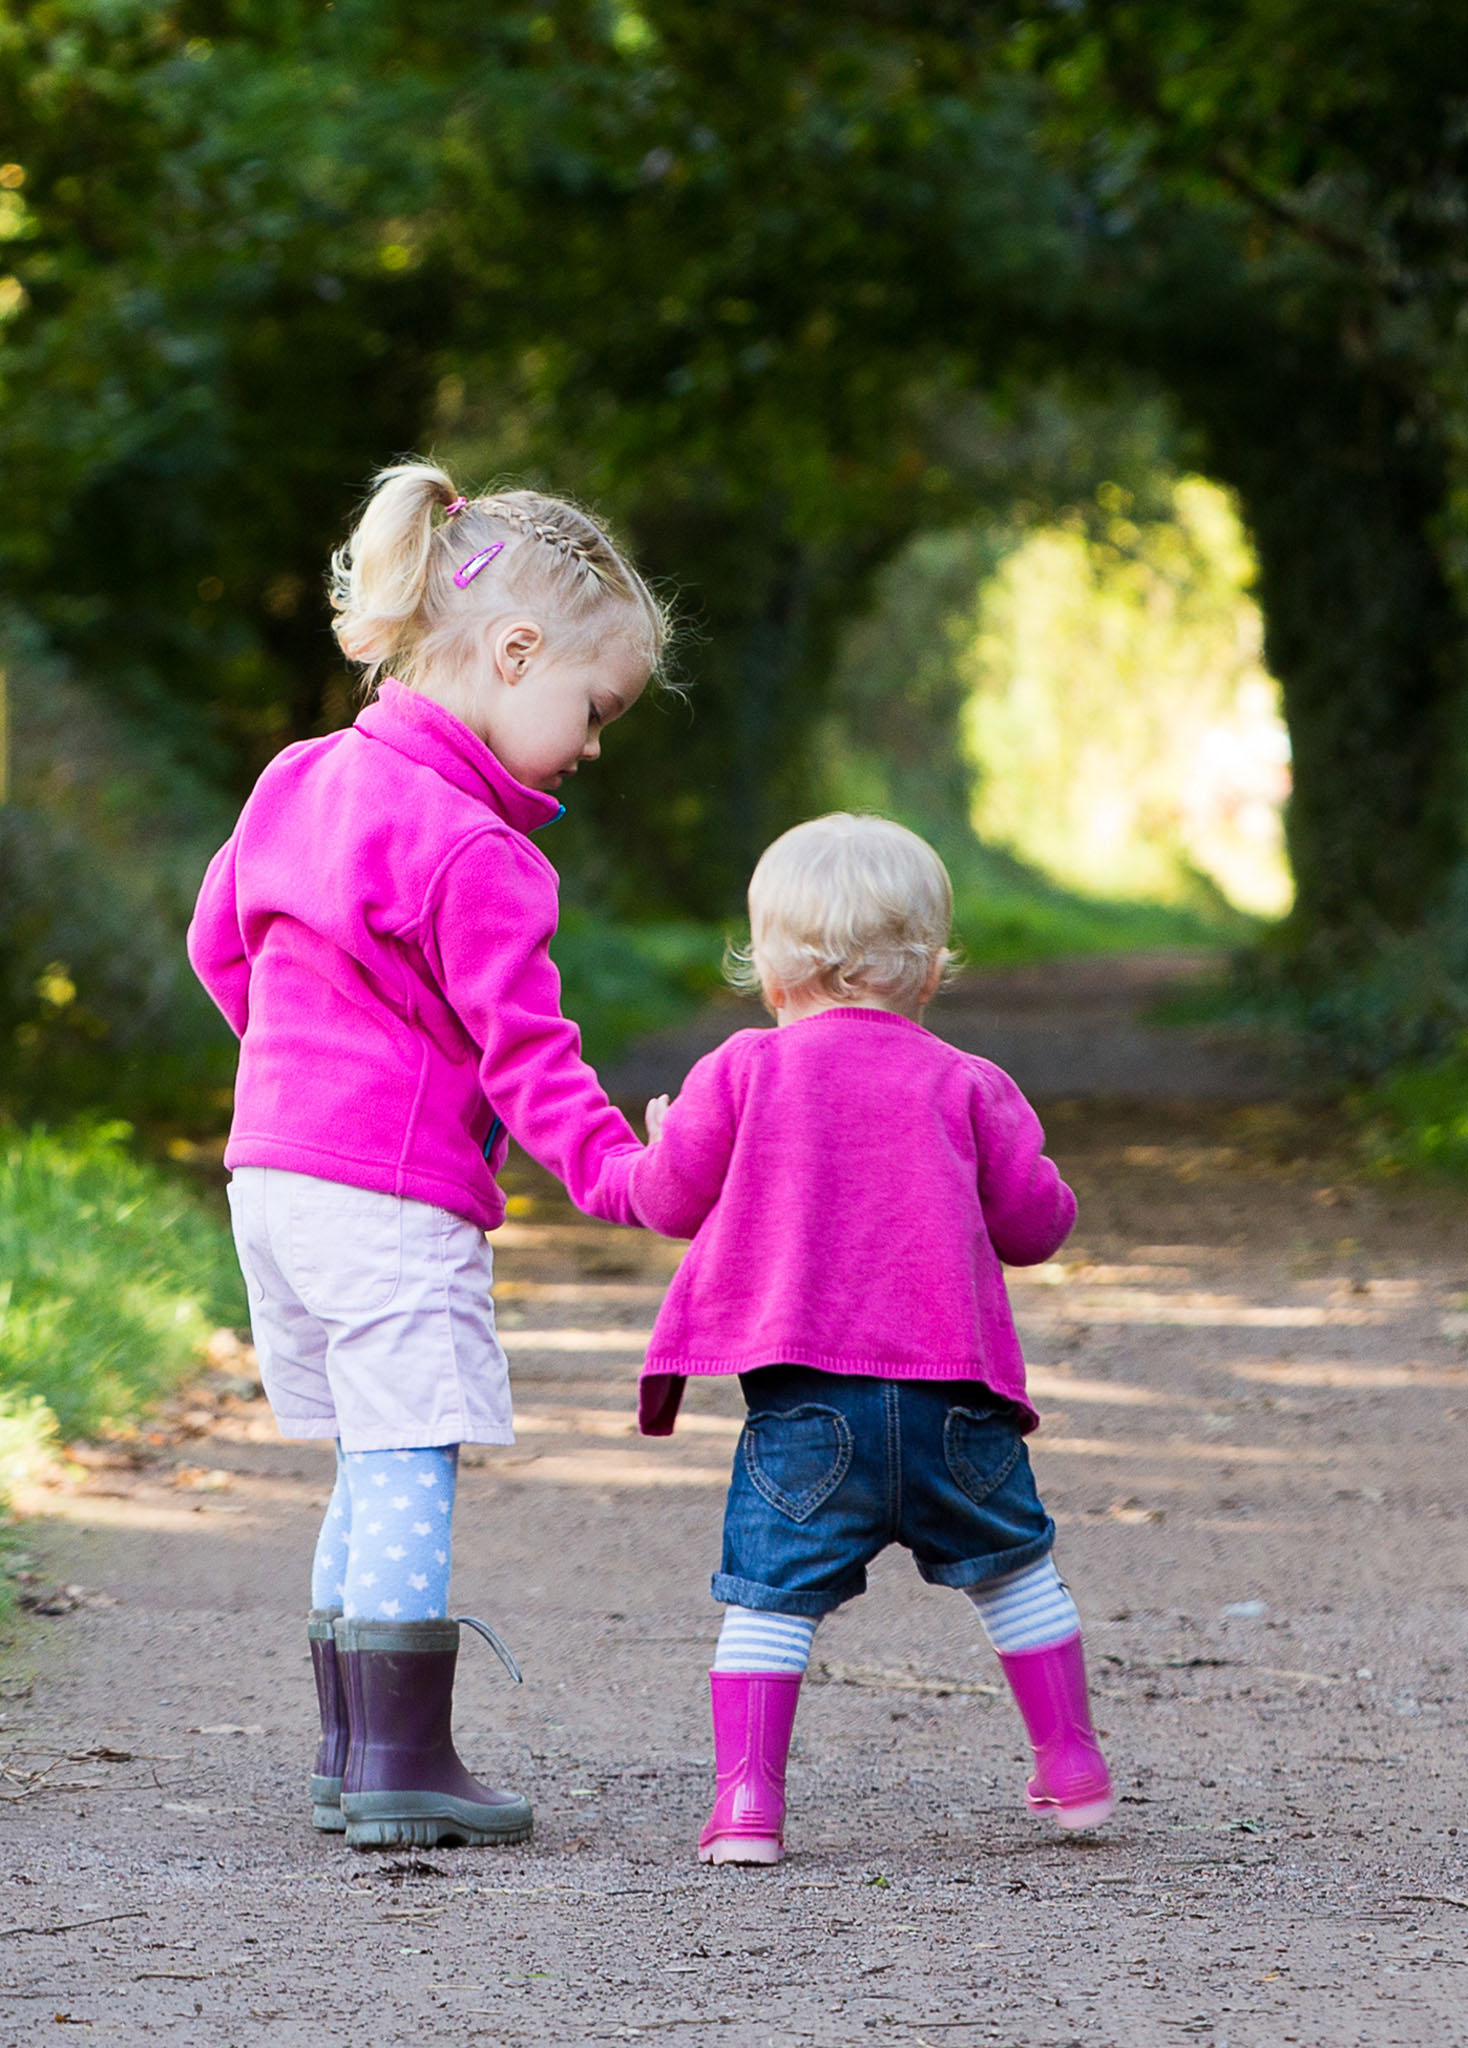 Lifestyle family portrait photography of young sisters out for a walk in Lymm, Cheshire